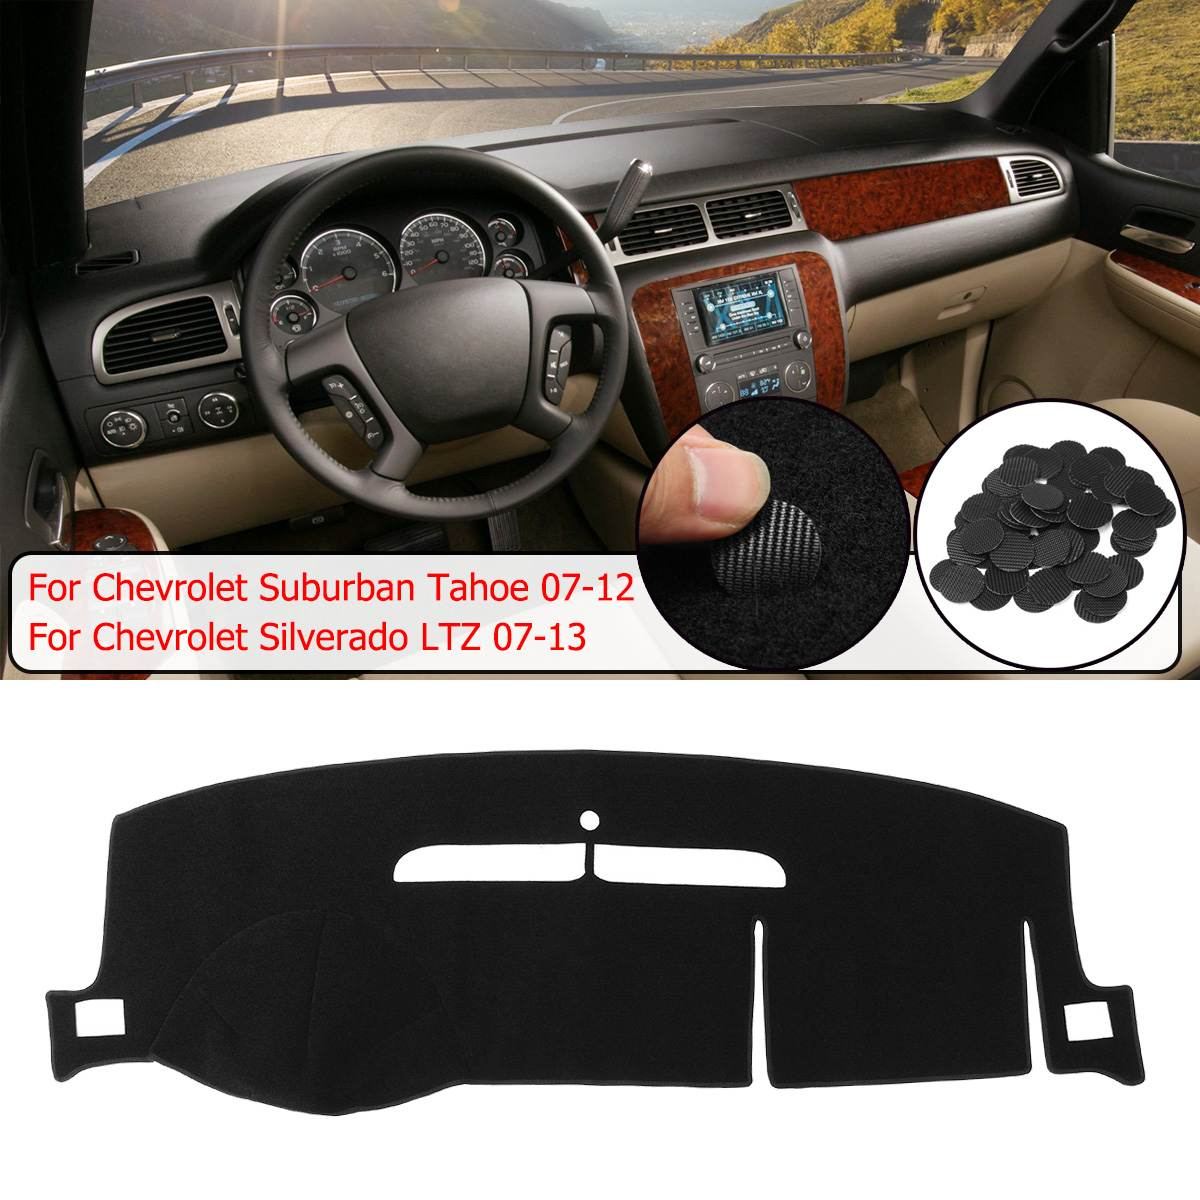 Car Dash Mat Dashboard Cover Board Sun Visor For Chevrolet Tahoe Suburban 2007 2017 Silverado Ltz In Visors From Automobiles